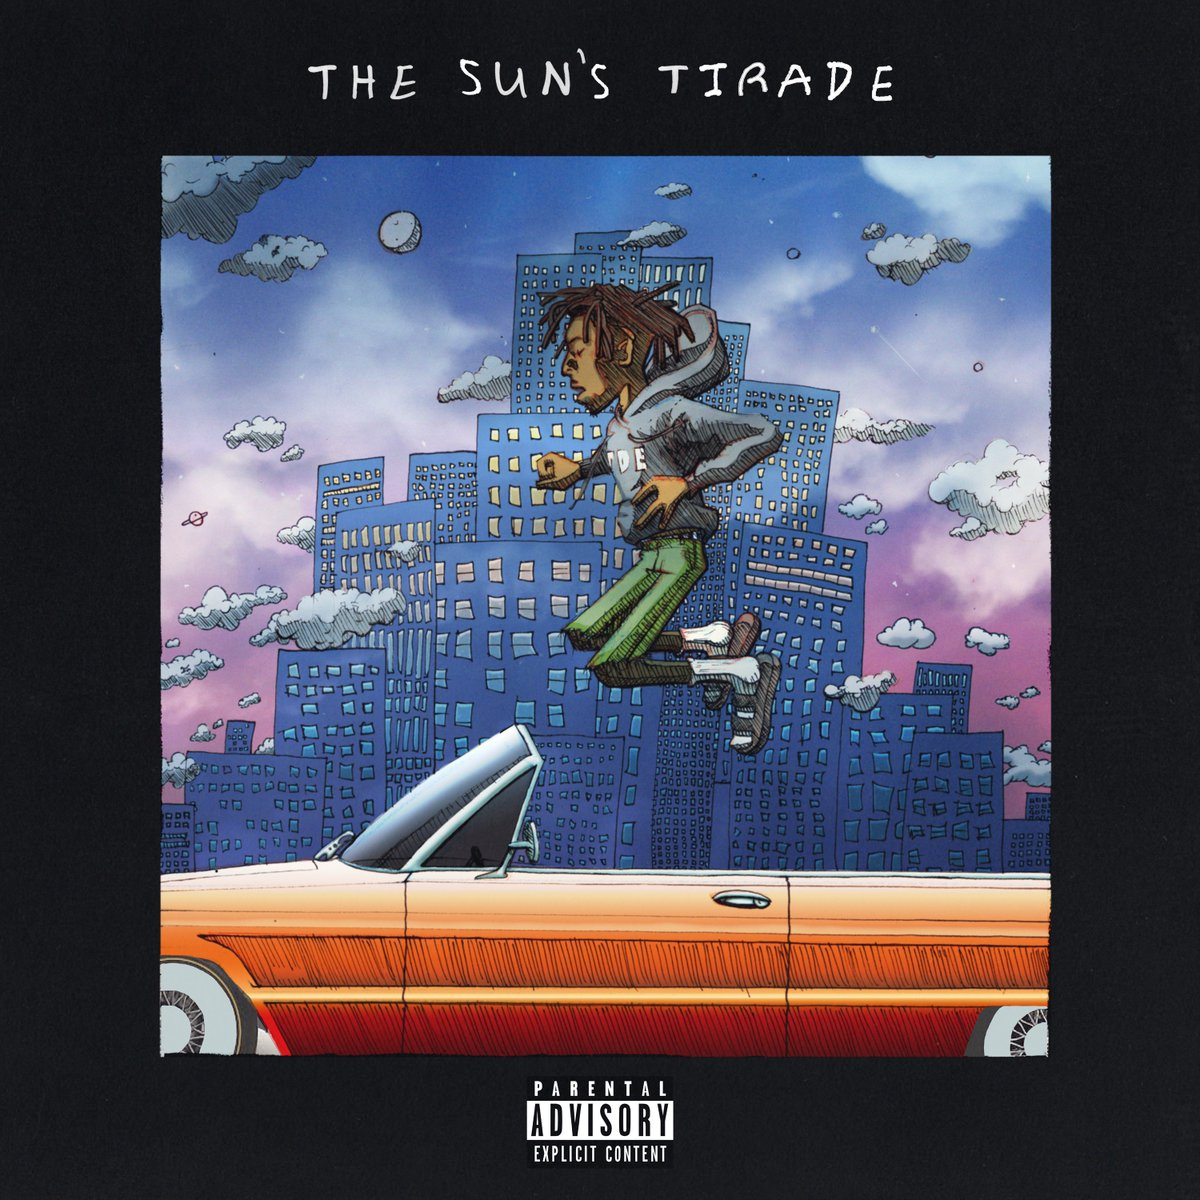 tonite, #TheSunsTirade by @isaiahrashad drops... available on ALL sales/streaming digital platforms. 09.02.16 #TDE https://t.co/BW0Zr6I35Z